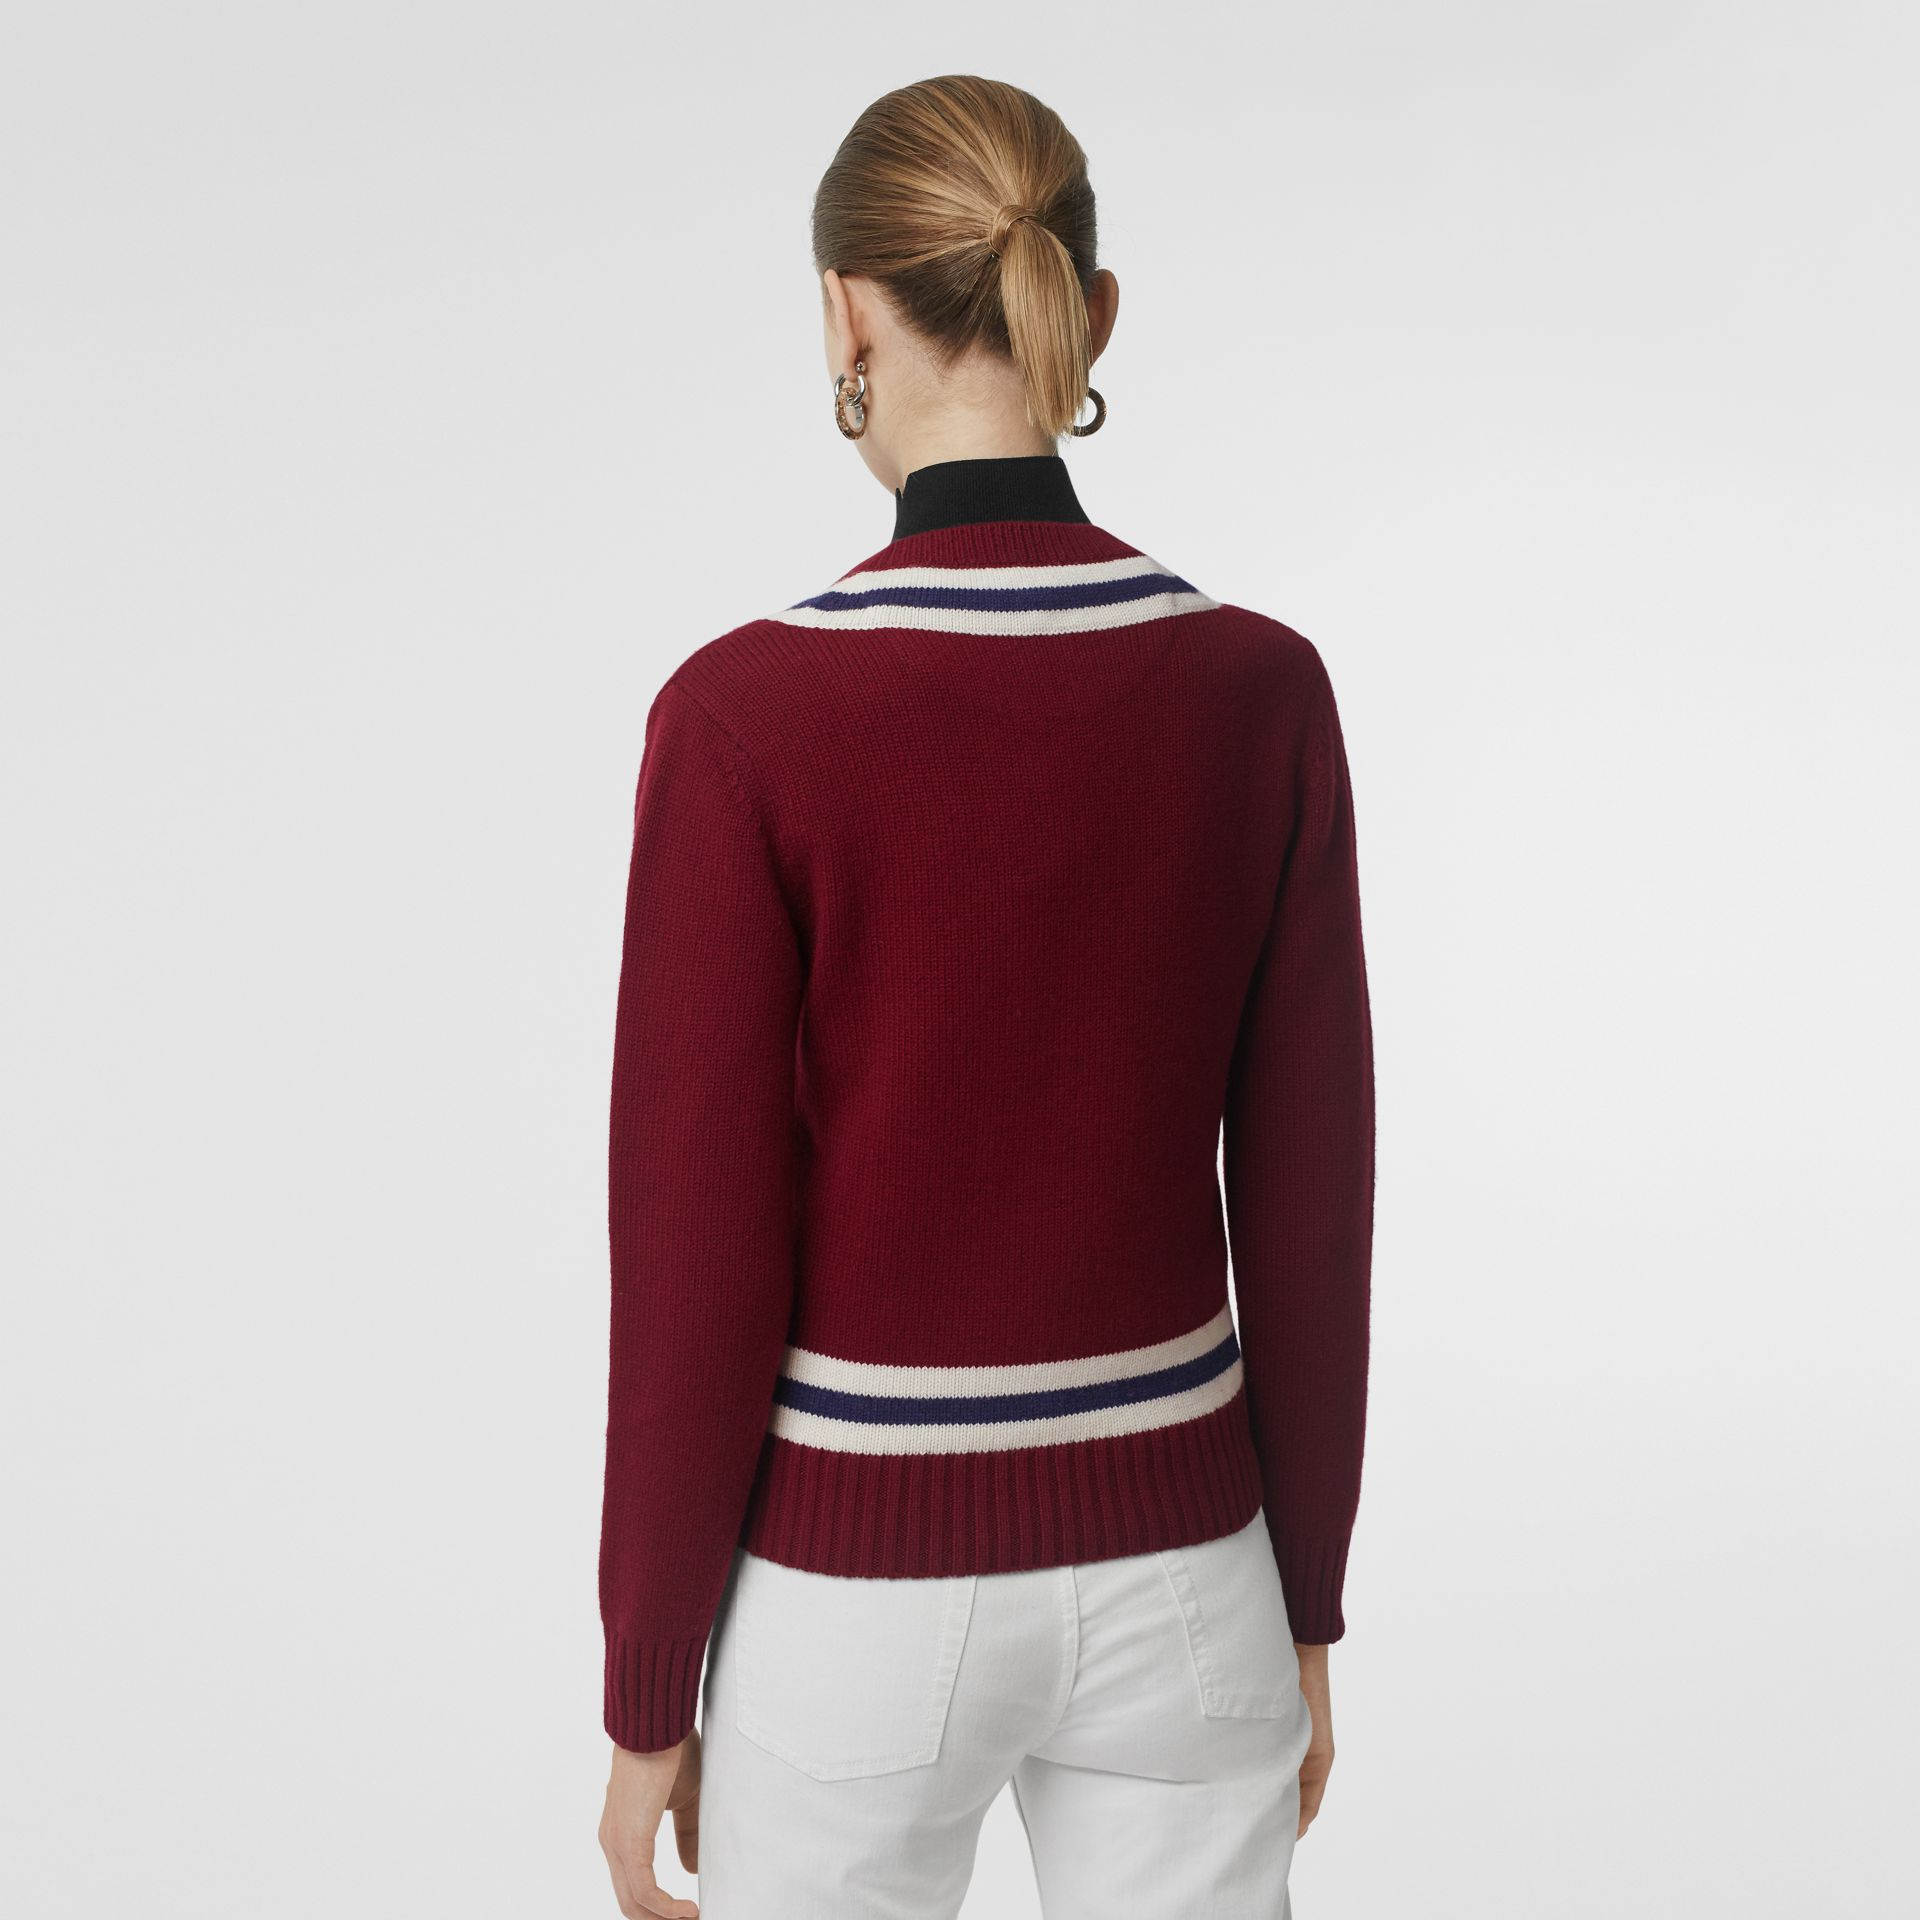 Embroidered Crest Wool Cashmere Sweater in Burgundy - Women | Burberry - gallery image 2